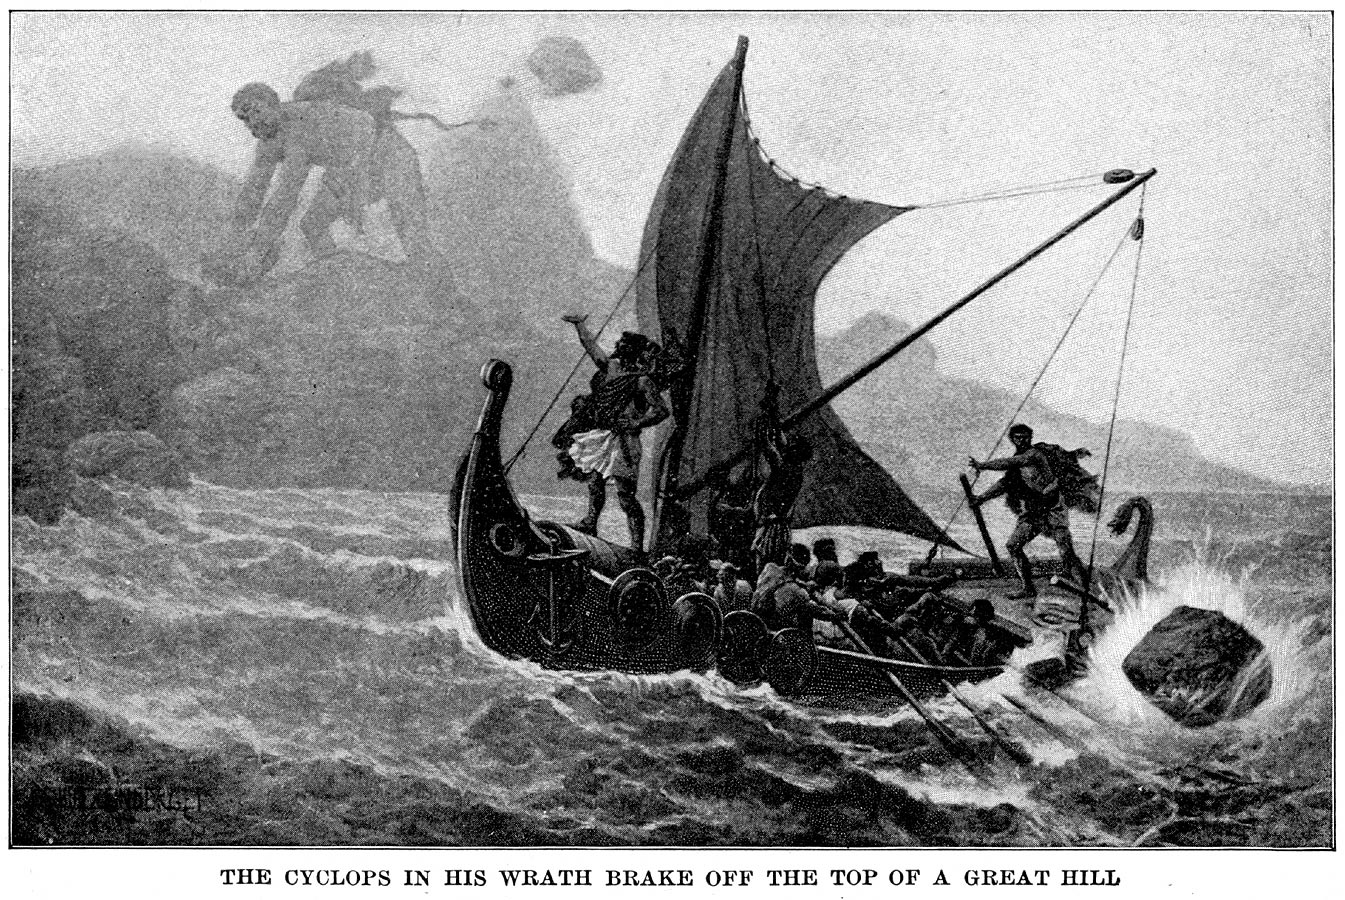 a sirens comparison of homers odyessy Get an answer for 'compare and contrast virgil's aeneid to homer's odyssey in regard to the story of the return from the trojan war' and find homework help for other aeneid questions at.